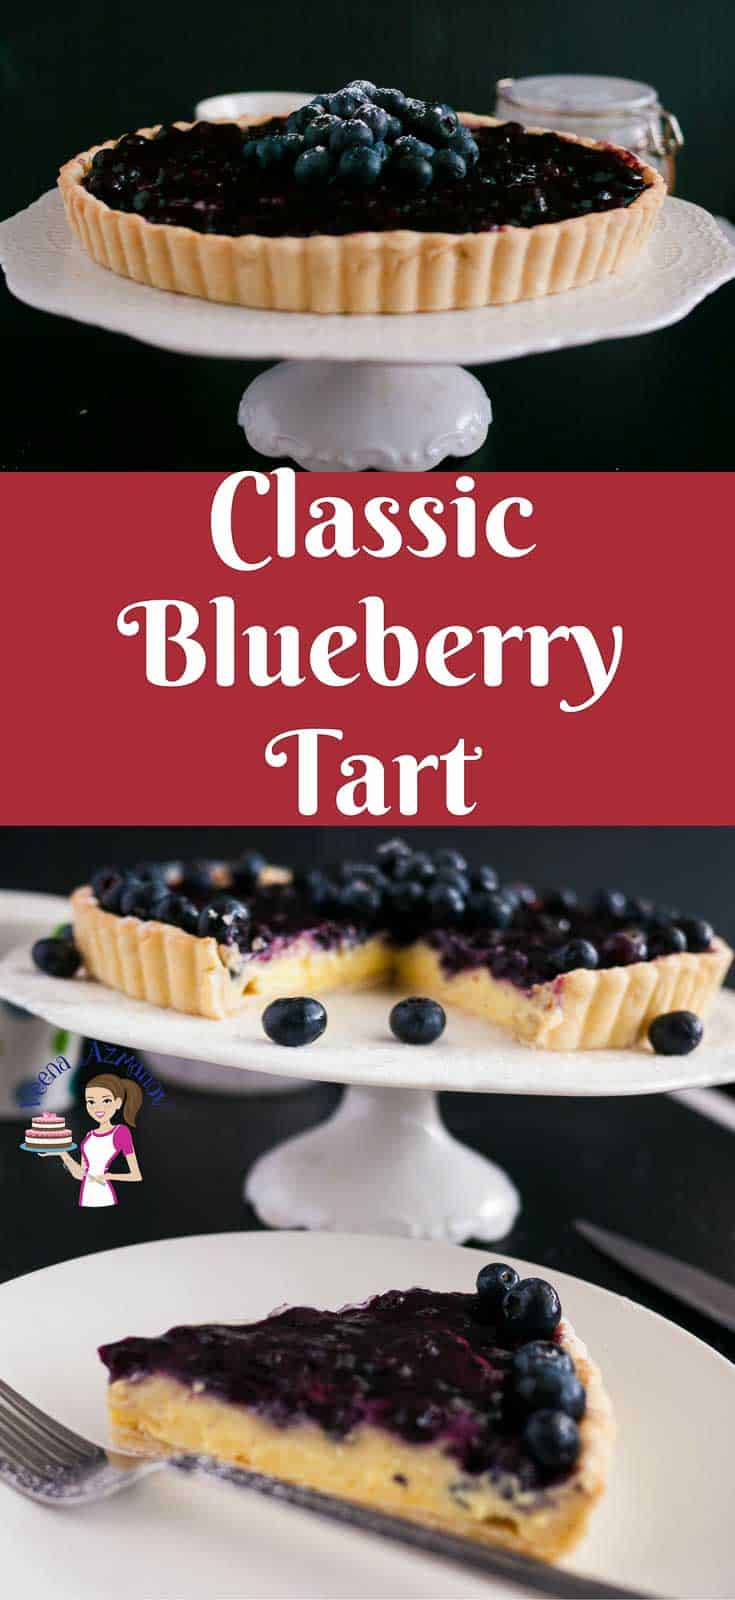 Pinterest Image for This blueberry tart is an absolute classic and luxurious dessert with rich, creamy vanilla pastry cream in a buttery short crust pastry, topped with a delicious blueberry compote and garnished with fresh blueberries. A simple, easy and effortless recipe that can be done a head of time.